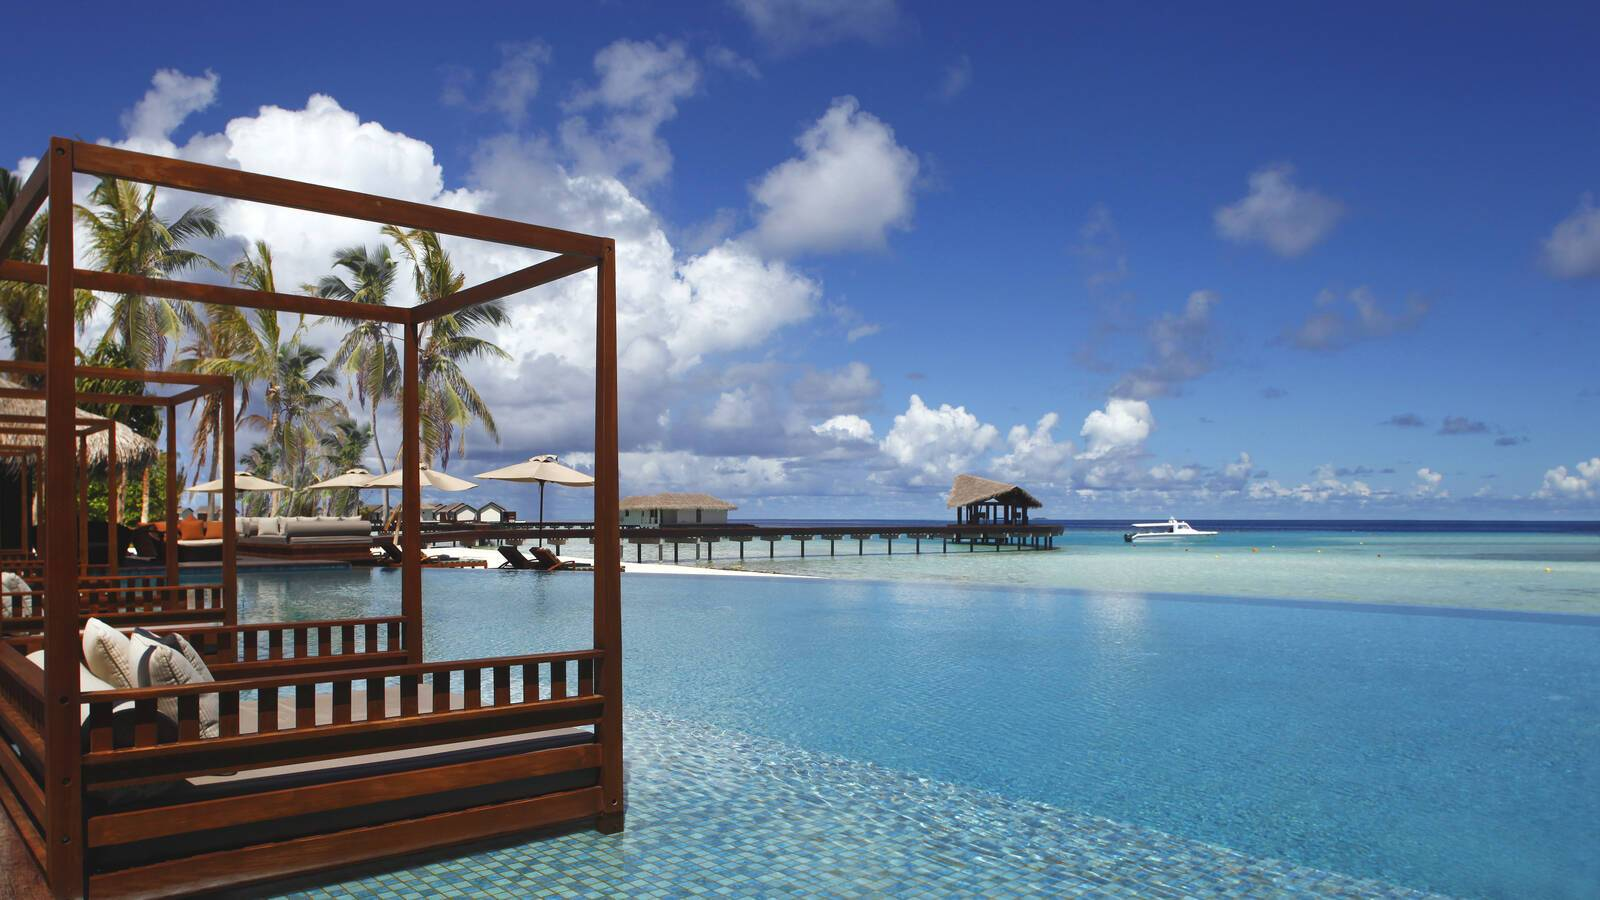 The Residence Piscine Maldives